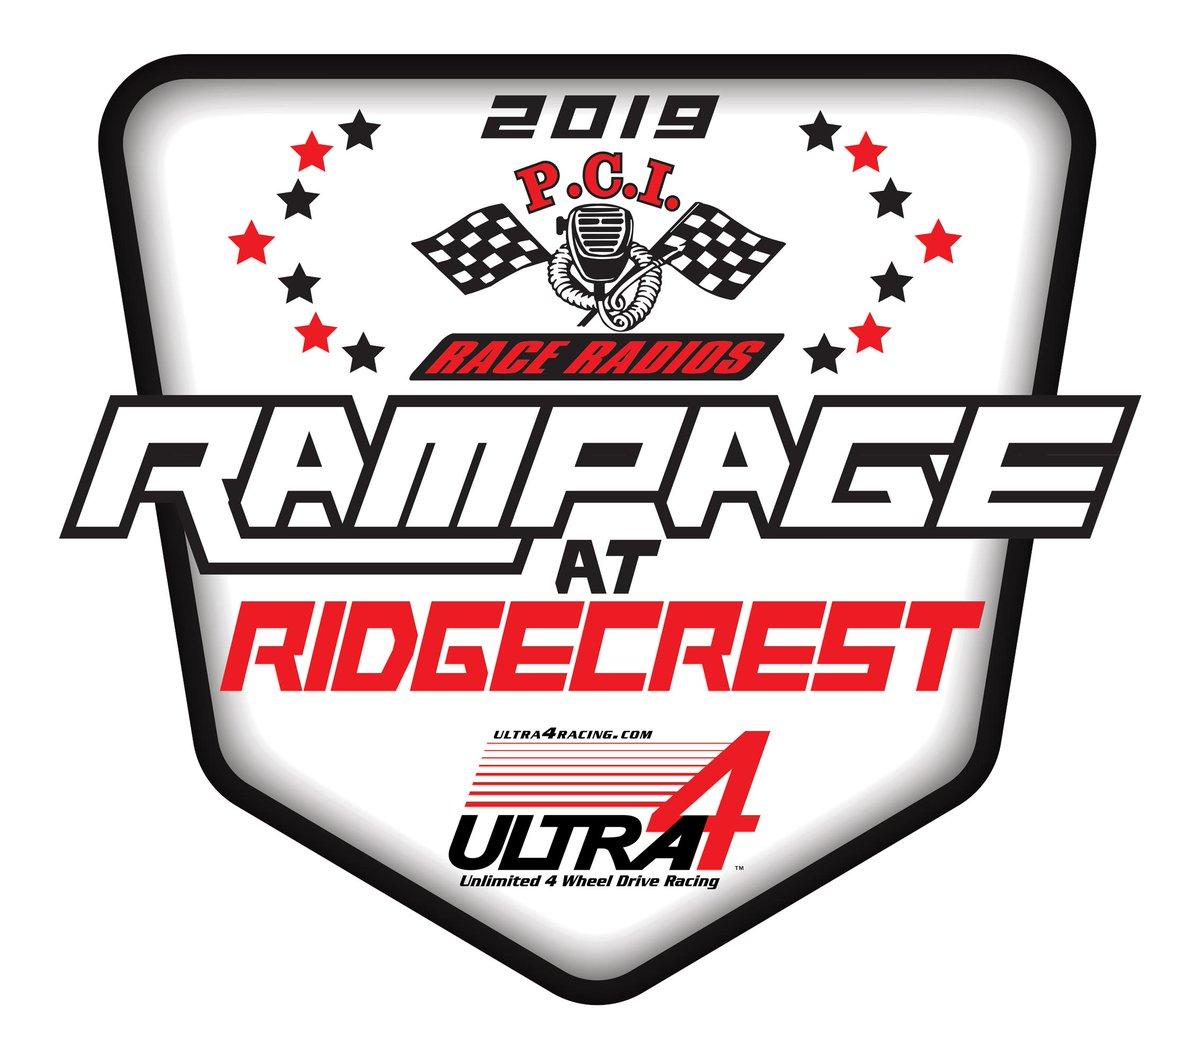 Roll call! Whos coming with us to Ridgecrest next month? ultra4racing.com/race/32 #Ultra4 #PCIRaceRadios #RampageAtRidgcrest #LasernutWesternSeries @pciraceradios @lasernut